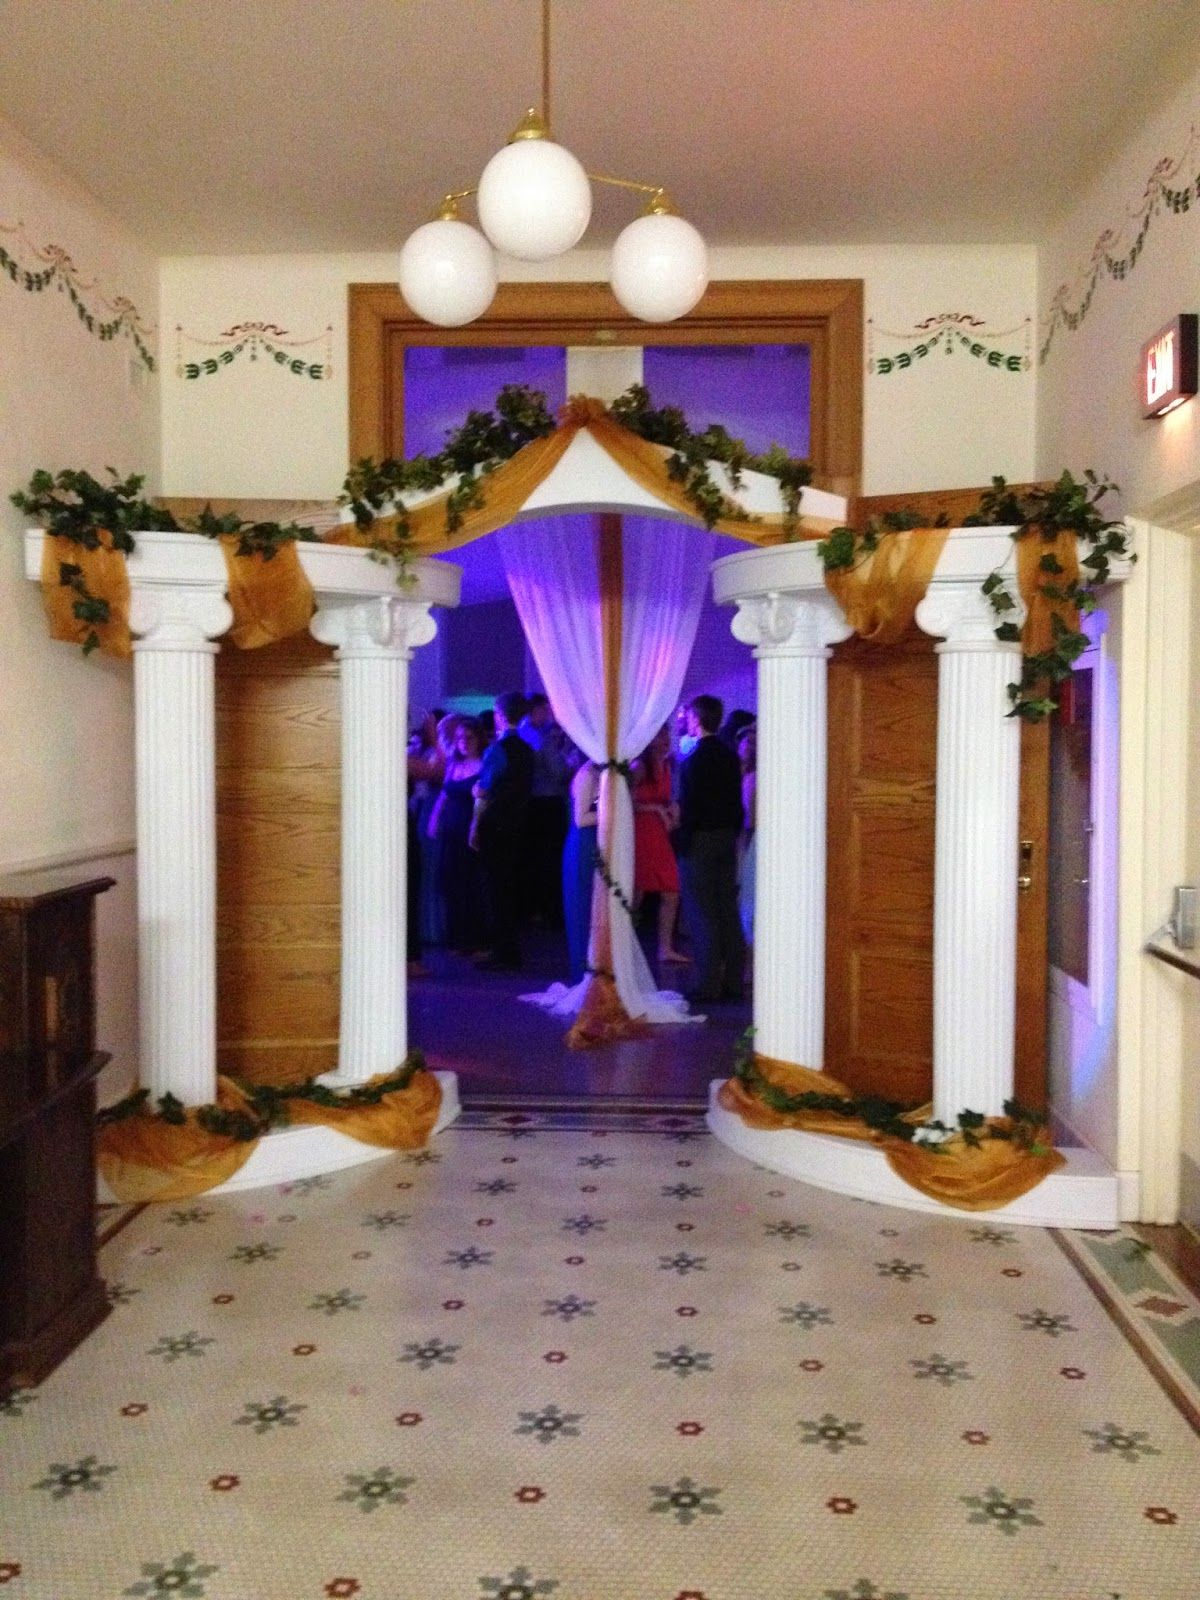 Greek prom decorations party people celebration company for Room decor ideas with balloons